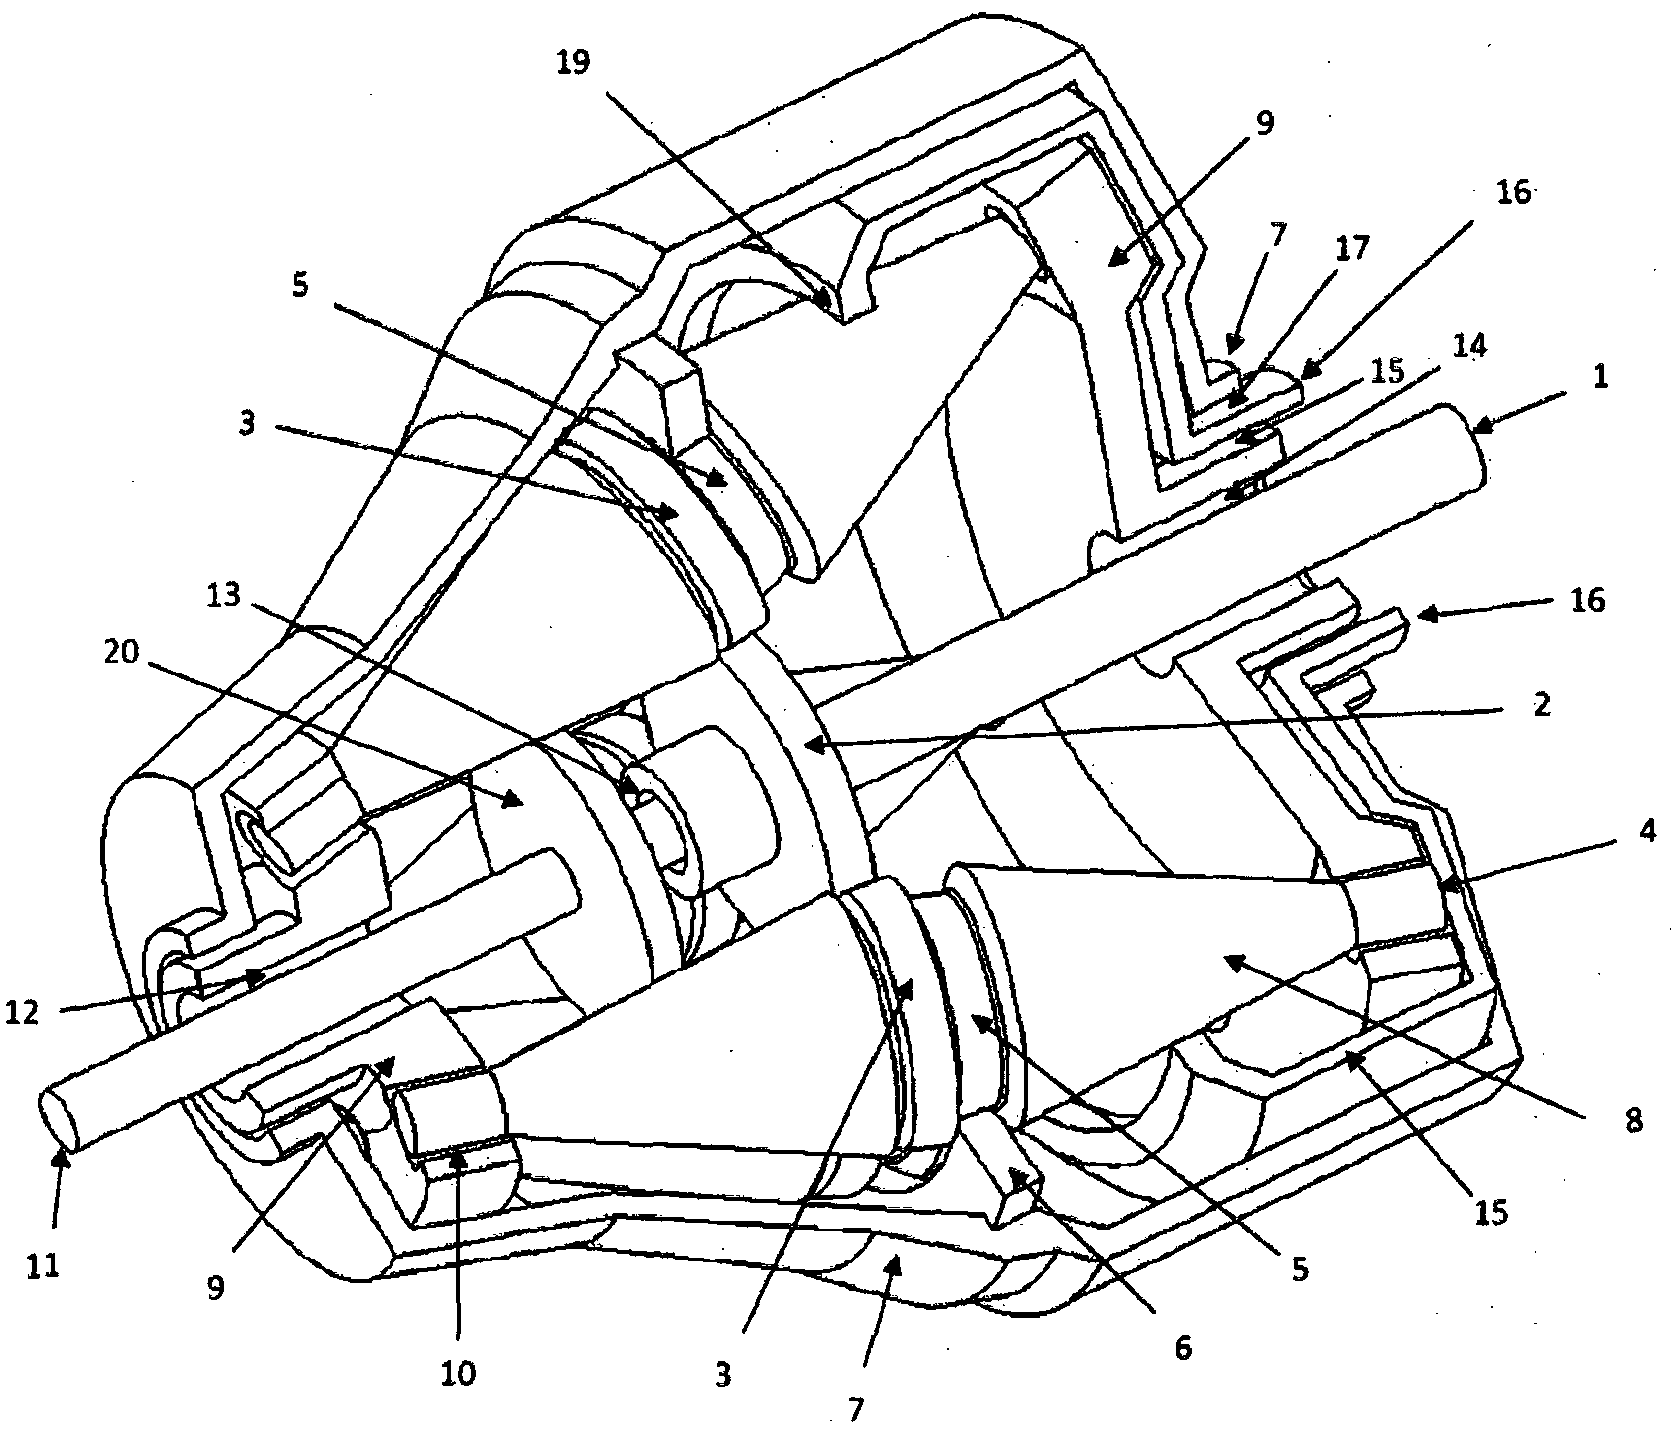 wo2014041326a1 transmission system patents Dana 60 Front End figure imgf000041 0002